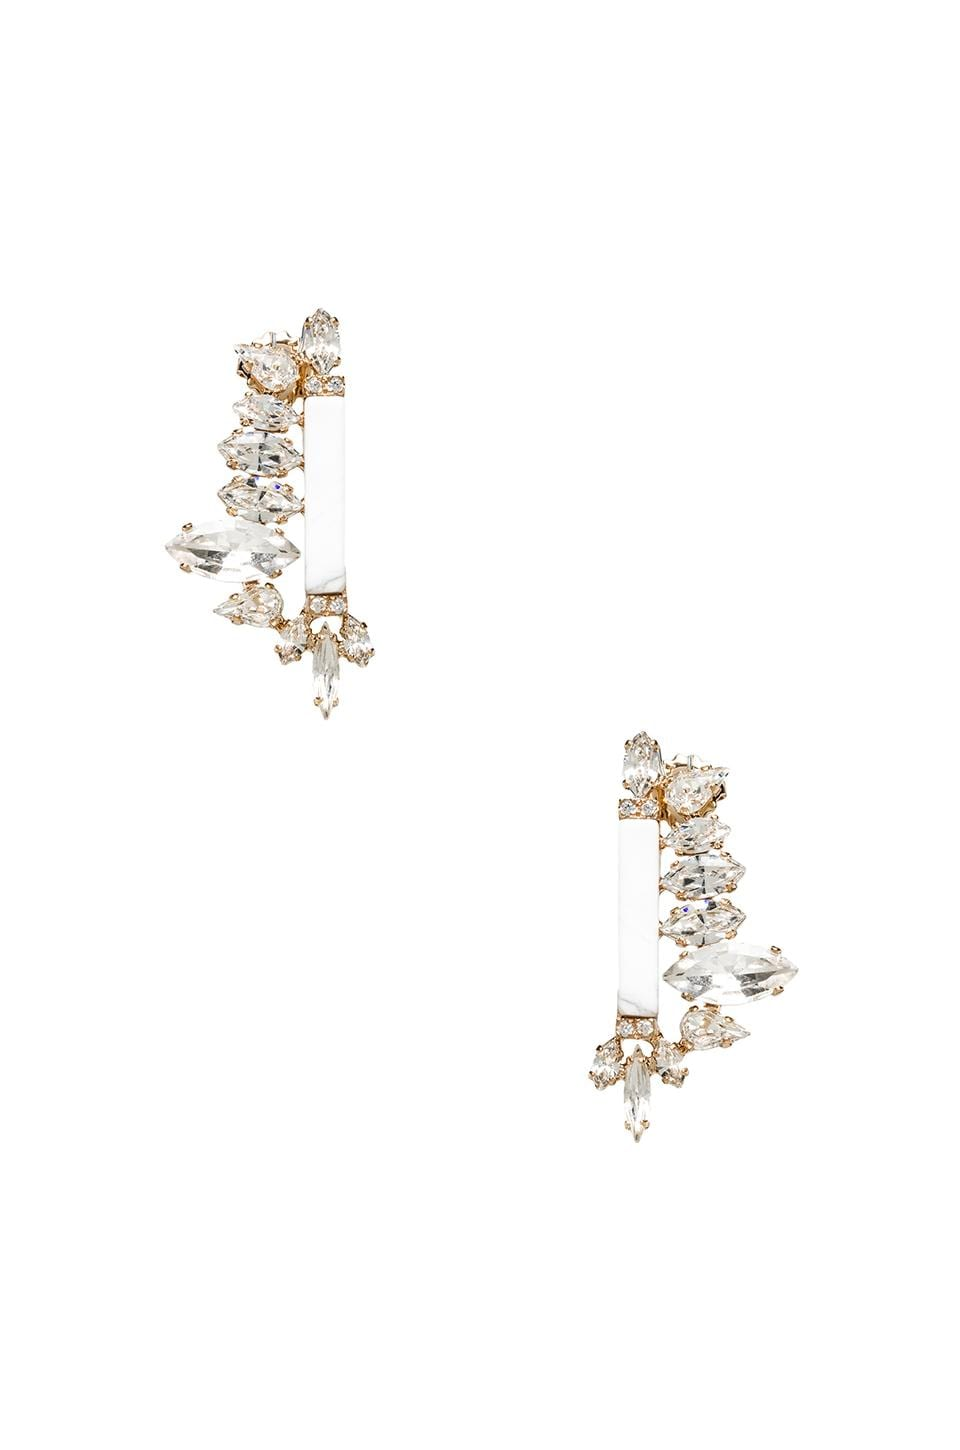 Nicole Meng Flowery Earrings in Gold & Clear